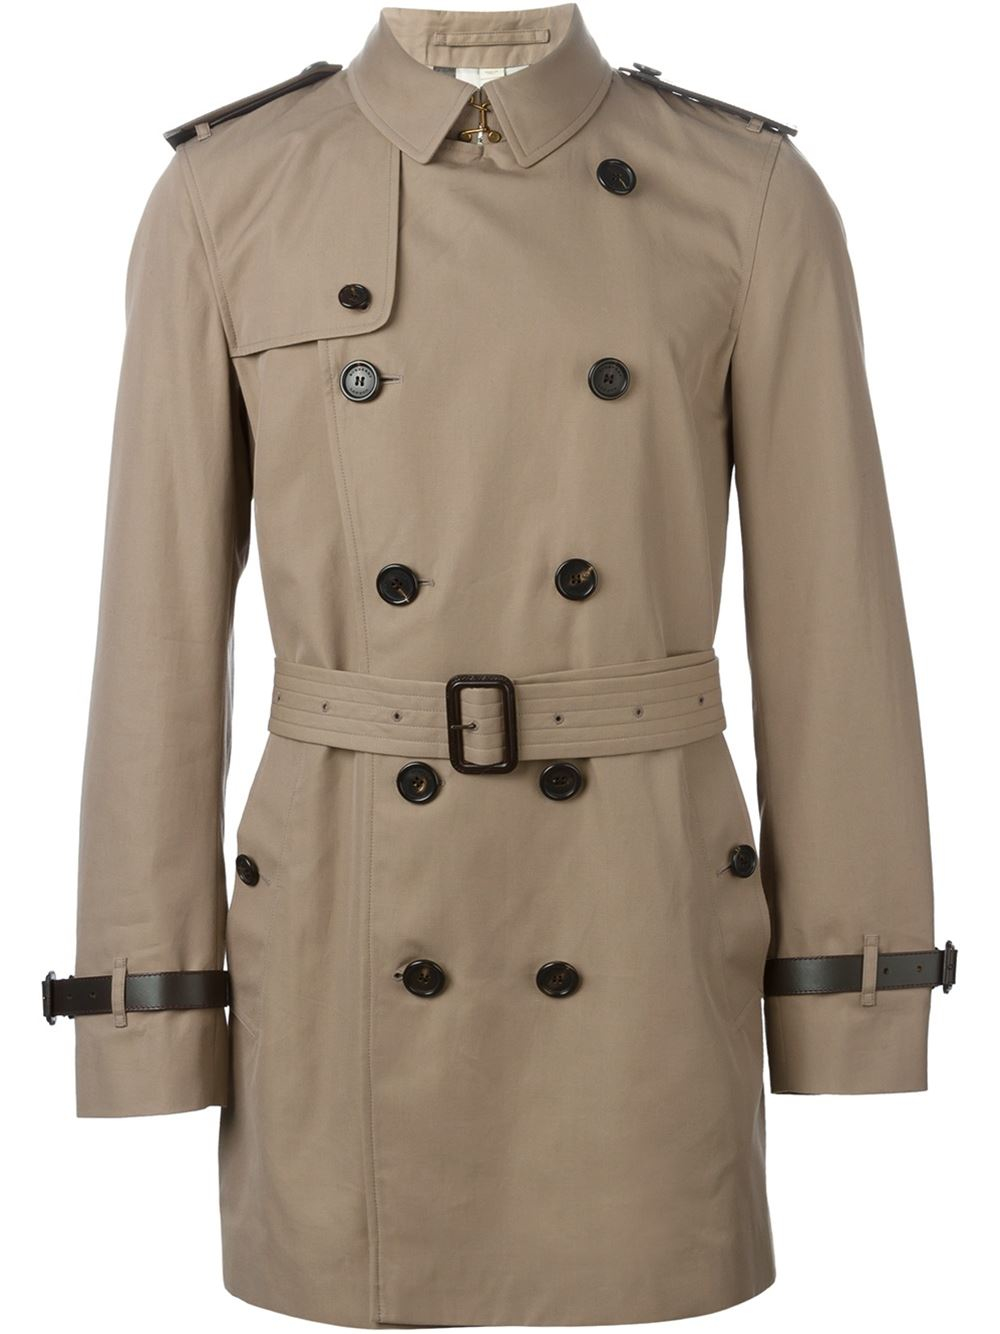 Go from dud to stud in an instant with the dapper military-inspired jacket that never goes out of style. A good trench coat is an essential to any man's wardrobe, no matter what you're wearing underneath (yes, even sweatpants on a lazy weekend!).